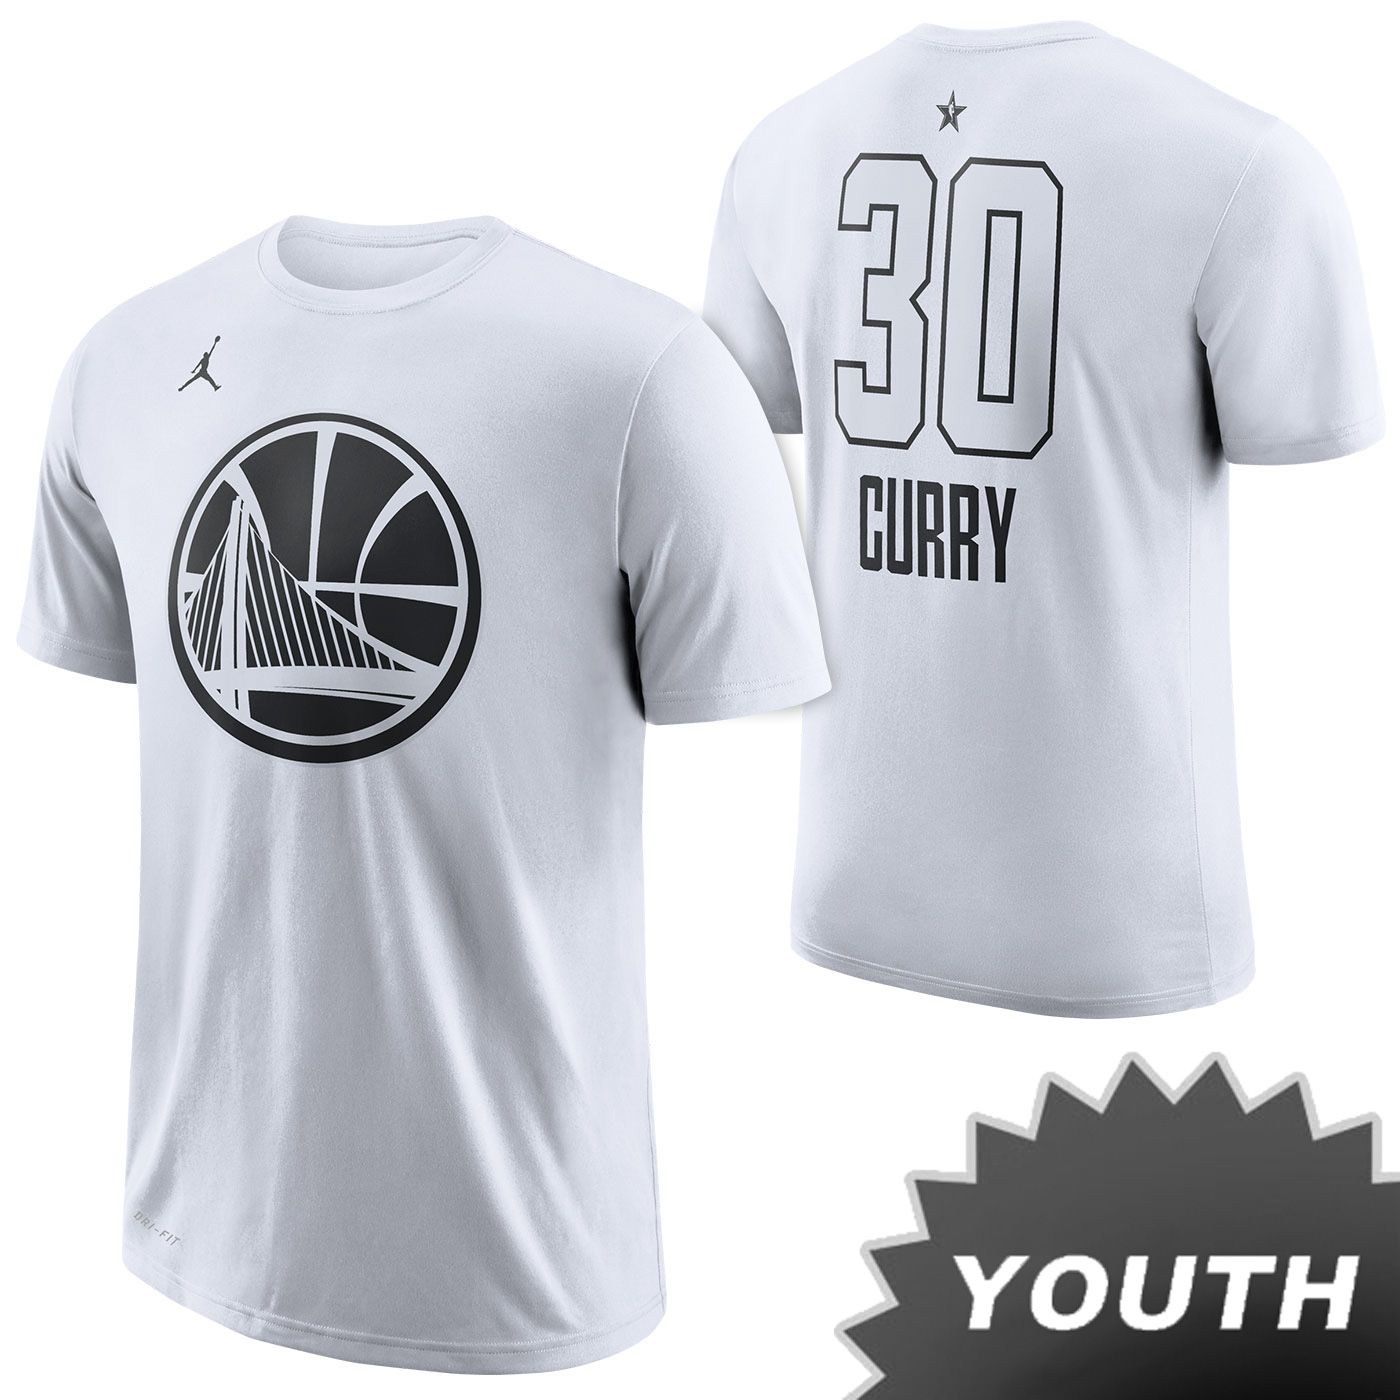 Nike 2018 NBA All-Star Edition Stephen Curry  30 Youth Jordan Name   Number  Tee - White c8316218e93